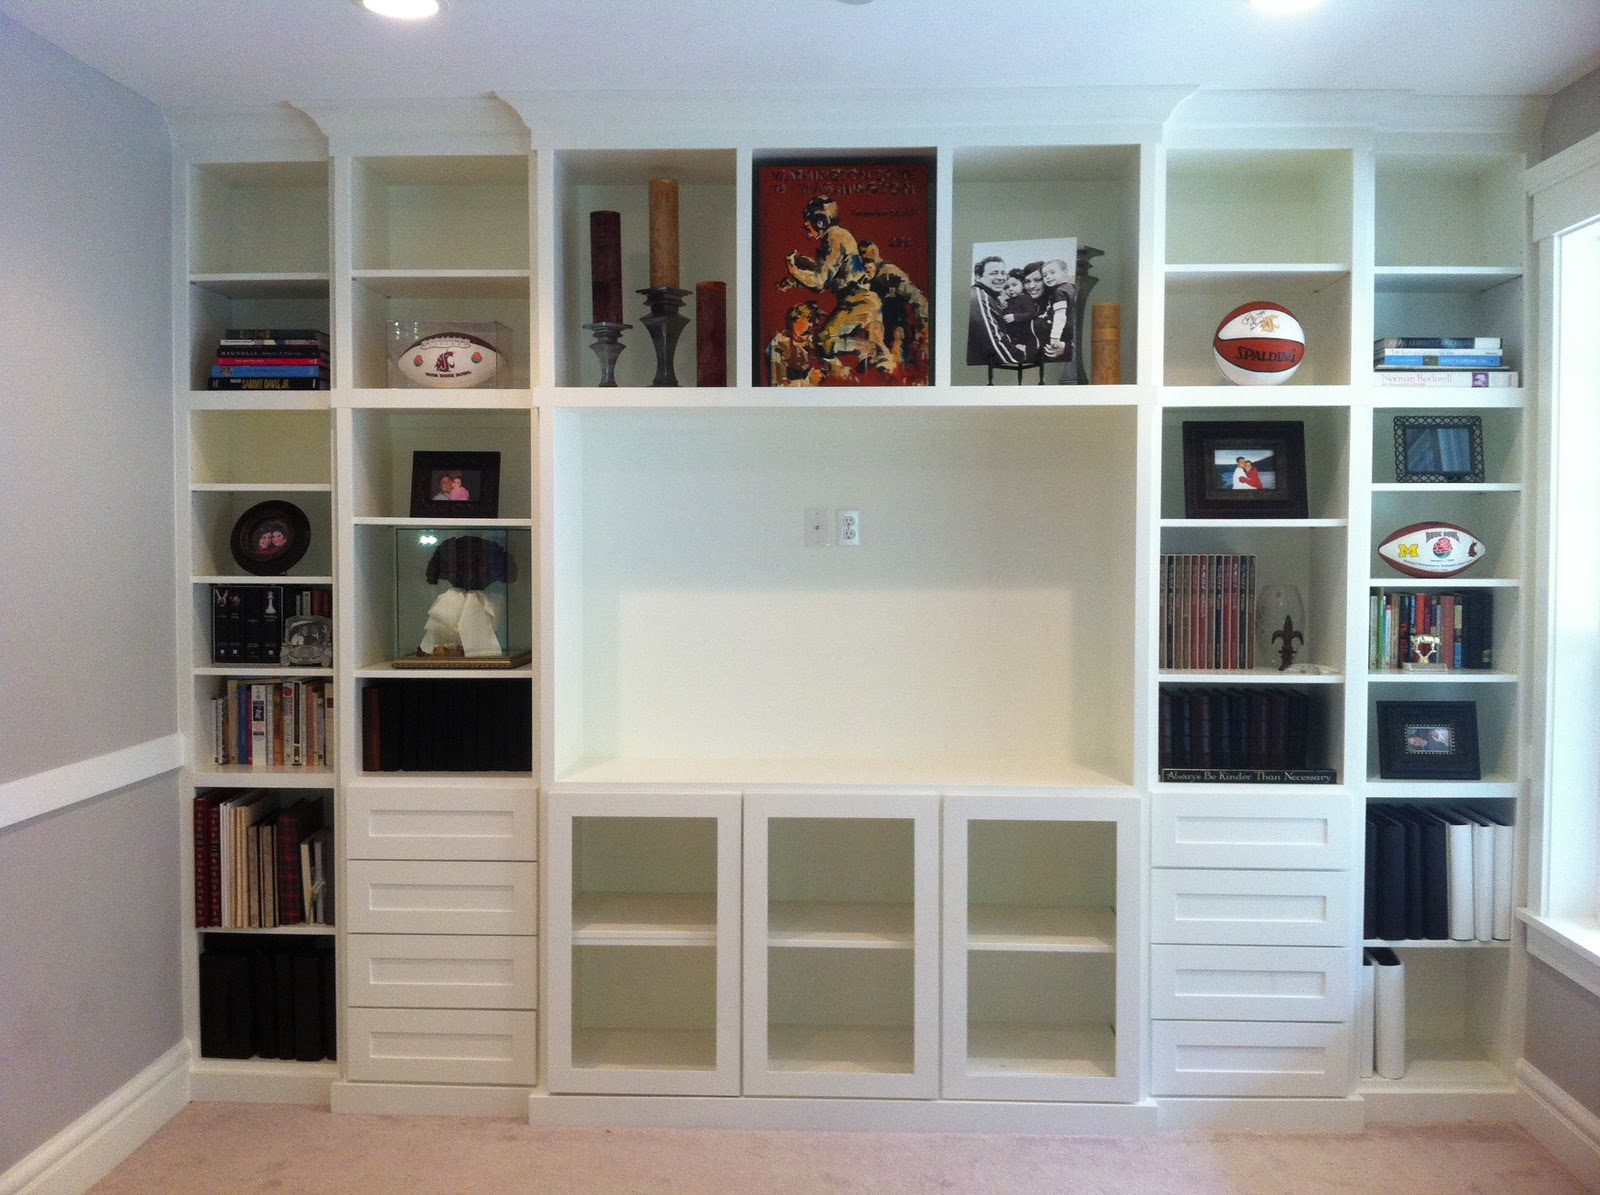 Superb img of In Its Place Organization: Built in Bookcase and a Feature! with #634135 color and 1600x1195 pixels